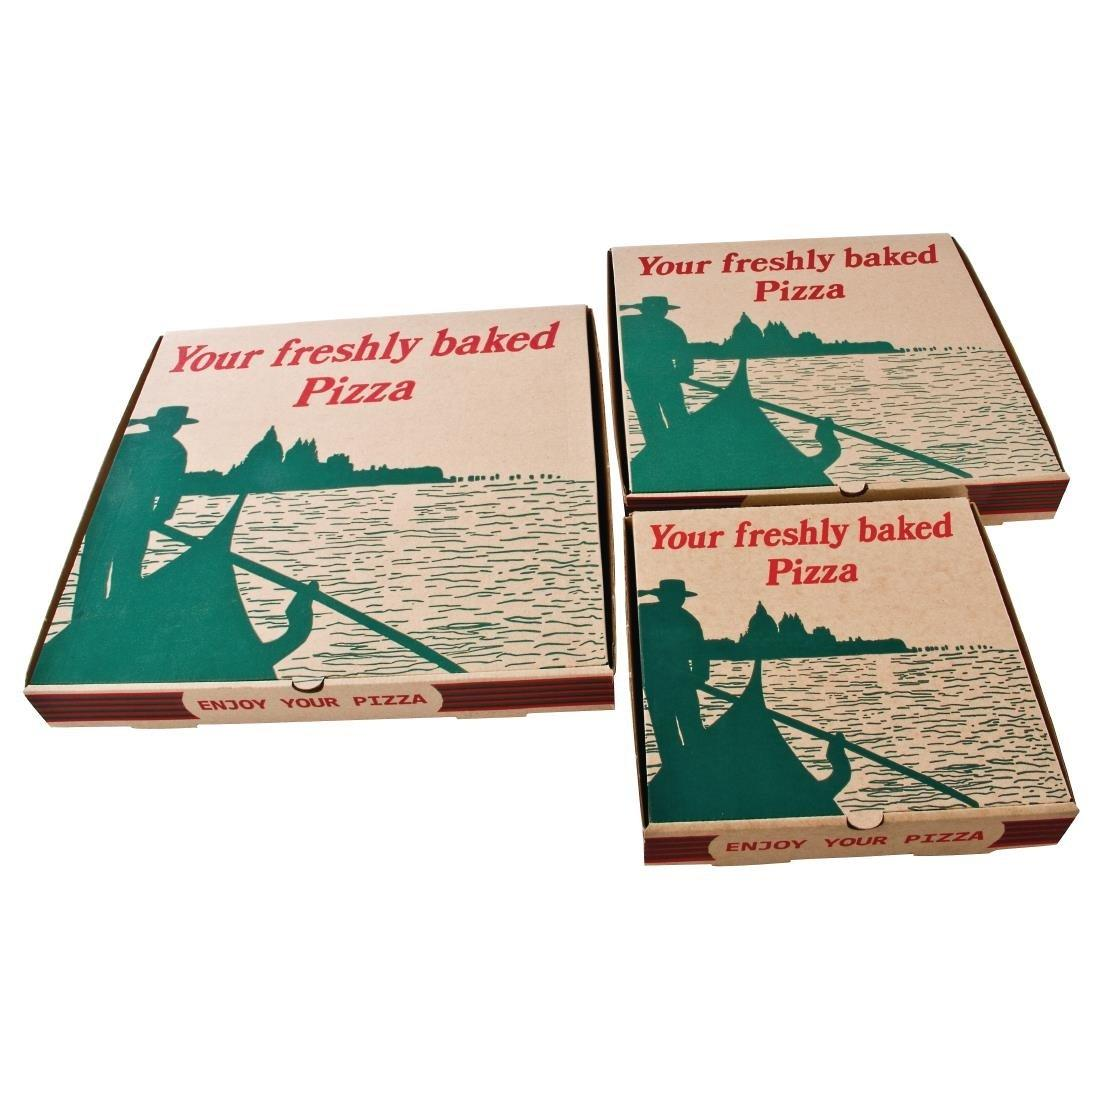 CUSTOM-PIZZA - Pizza boxes - Custom Branded - Custom Printed - Made in the UK